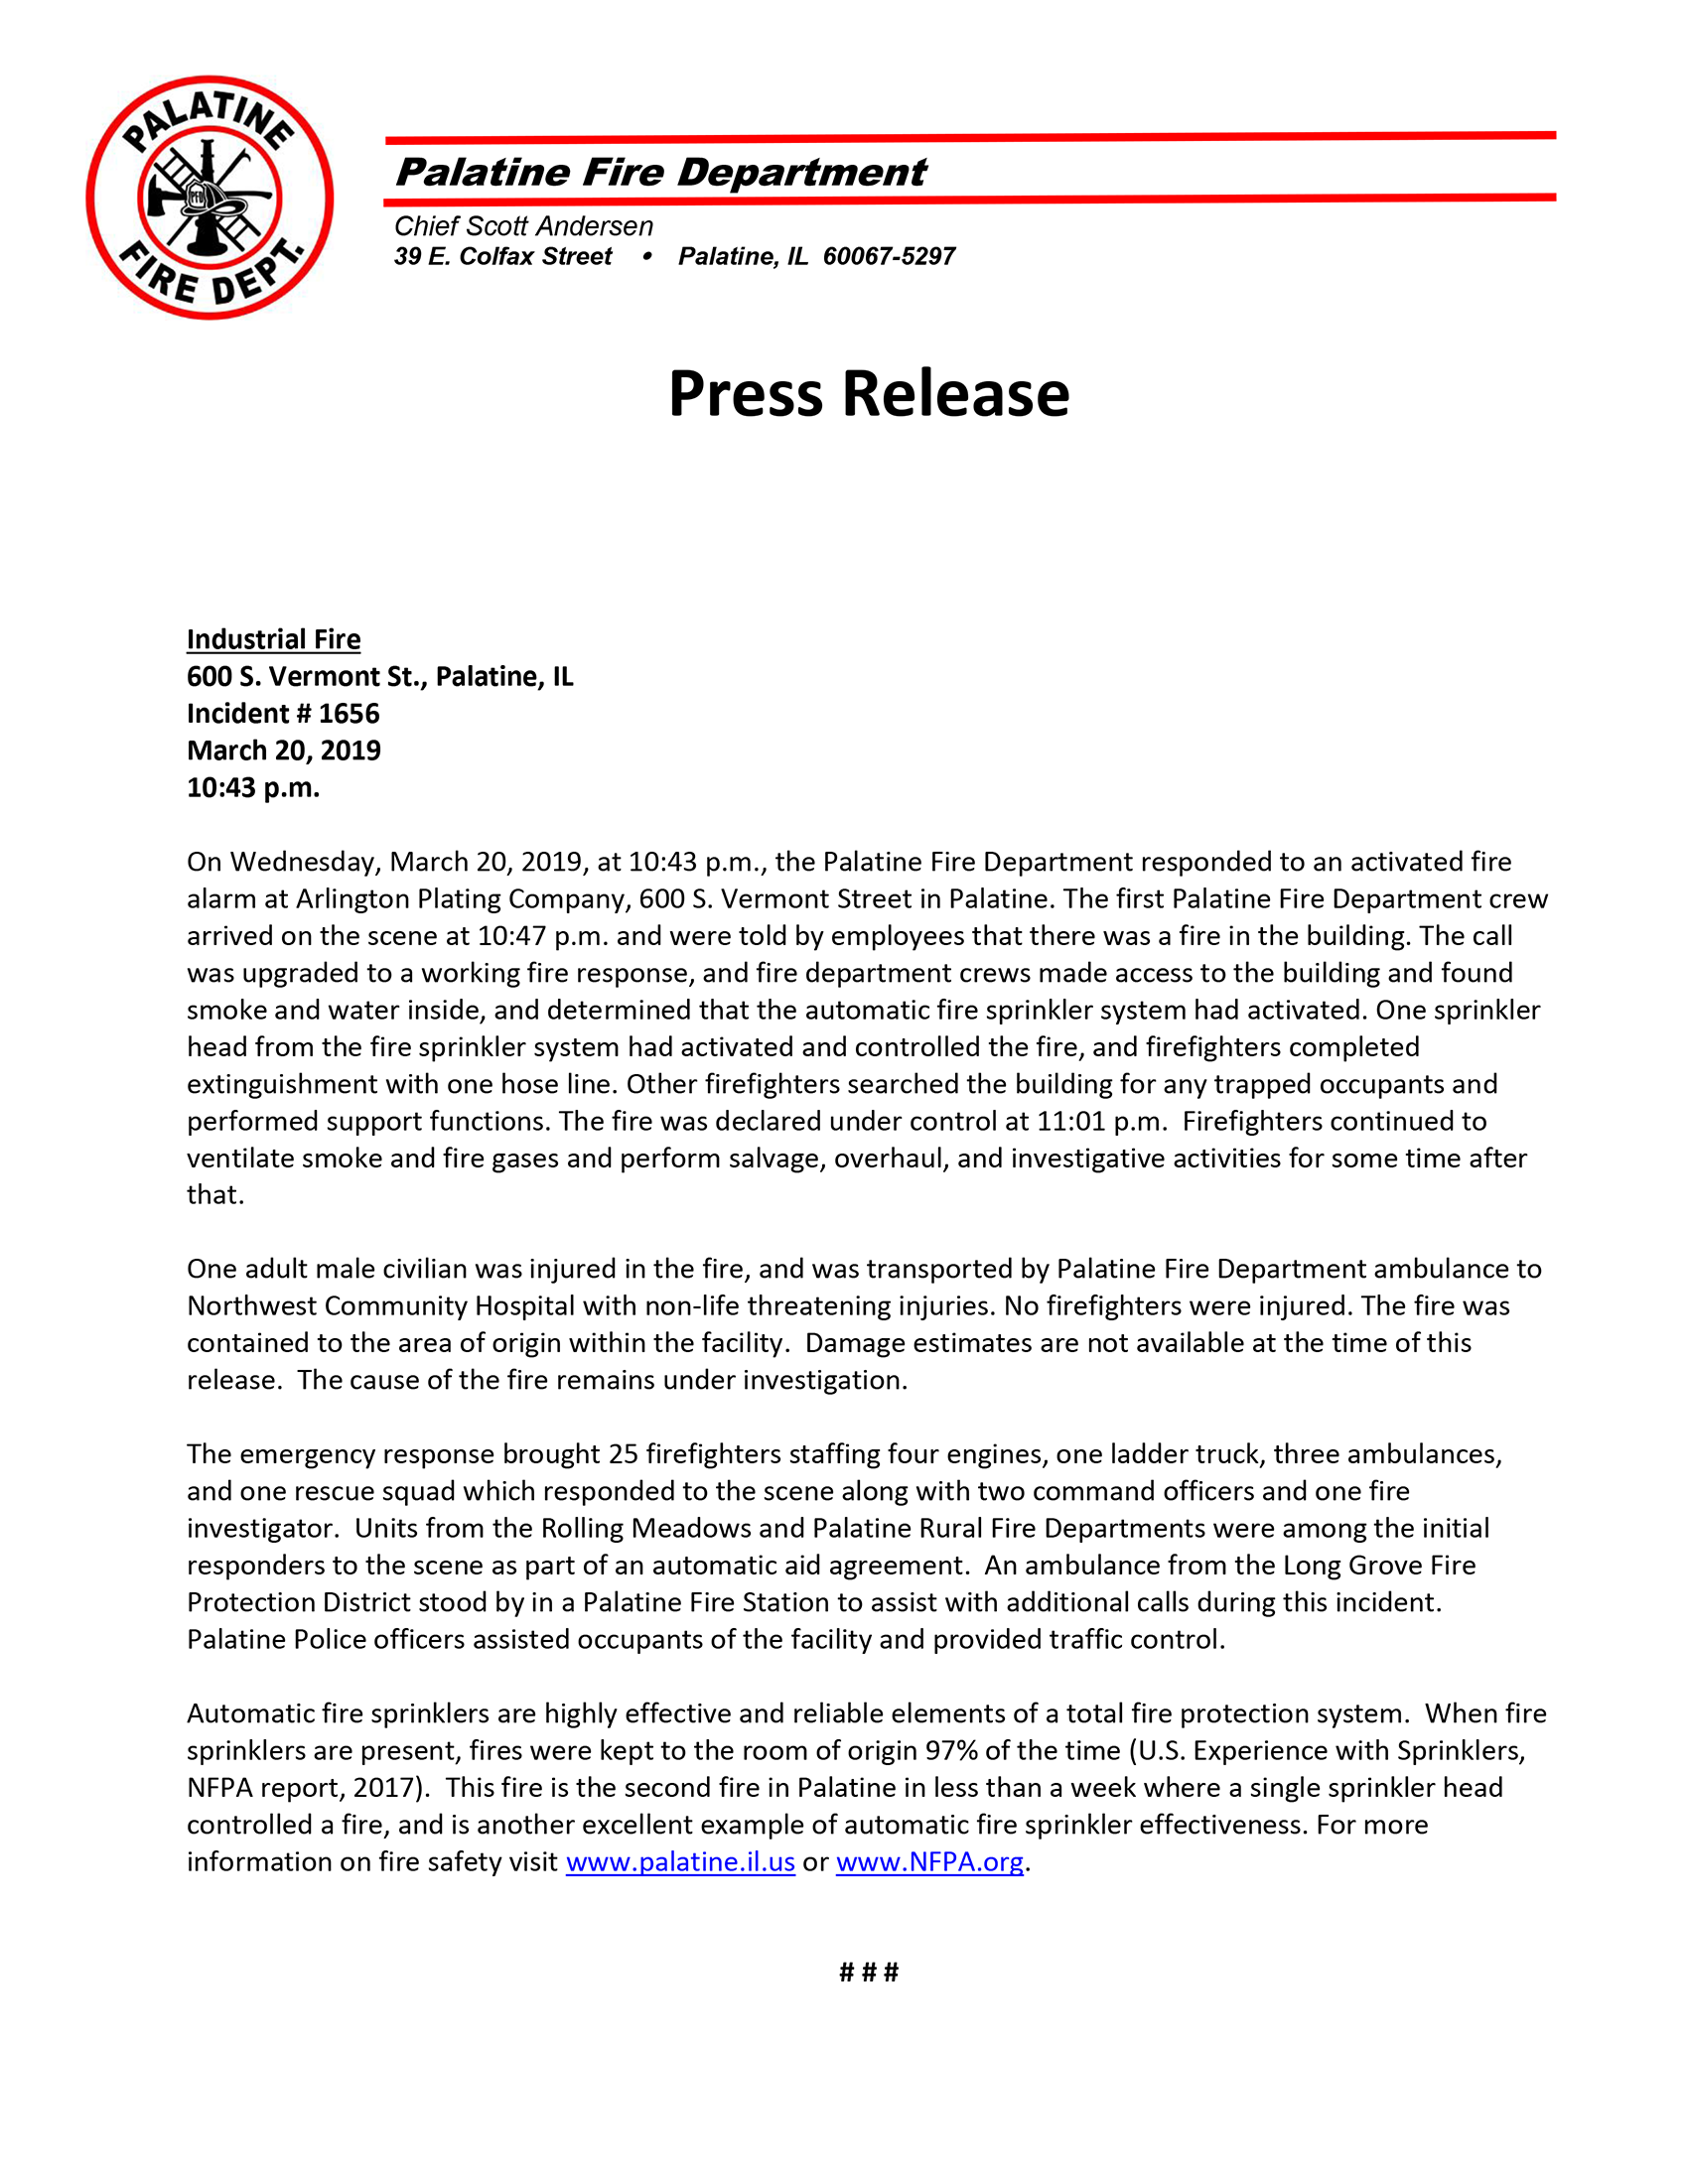 Palatine Fire Department press release,